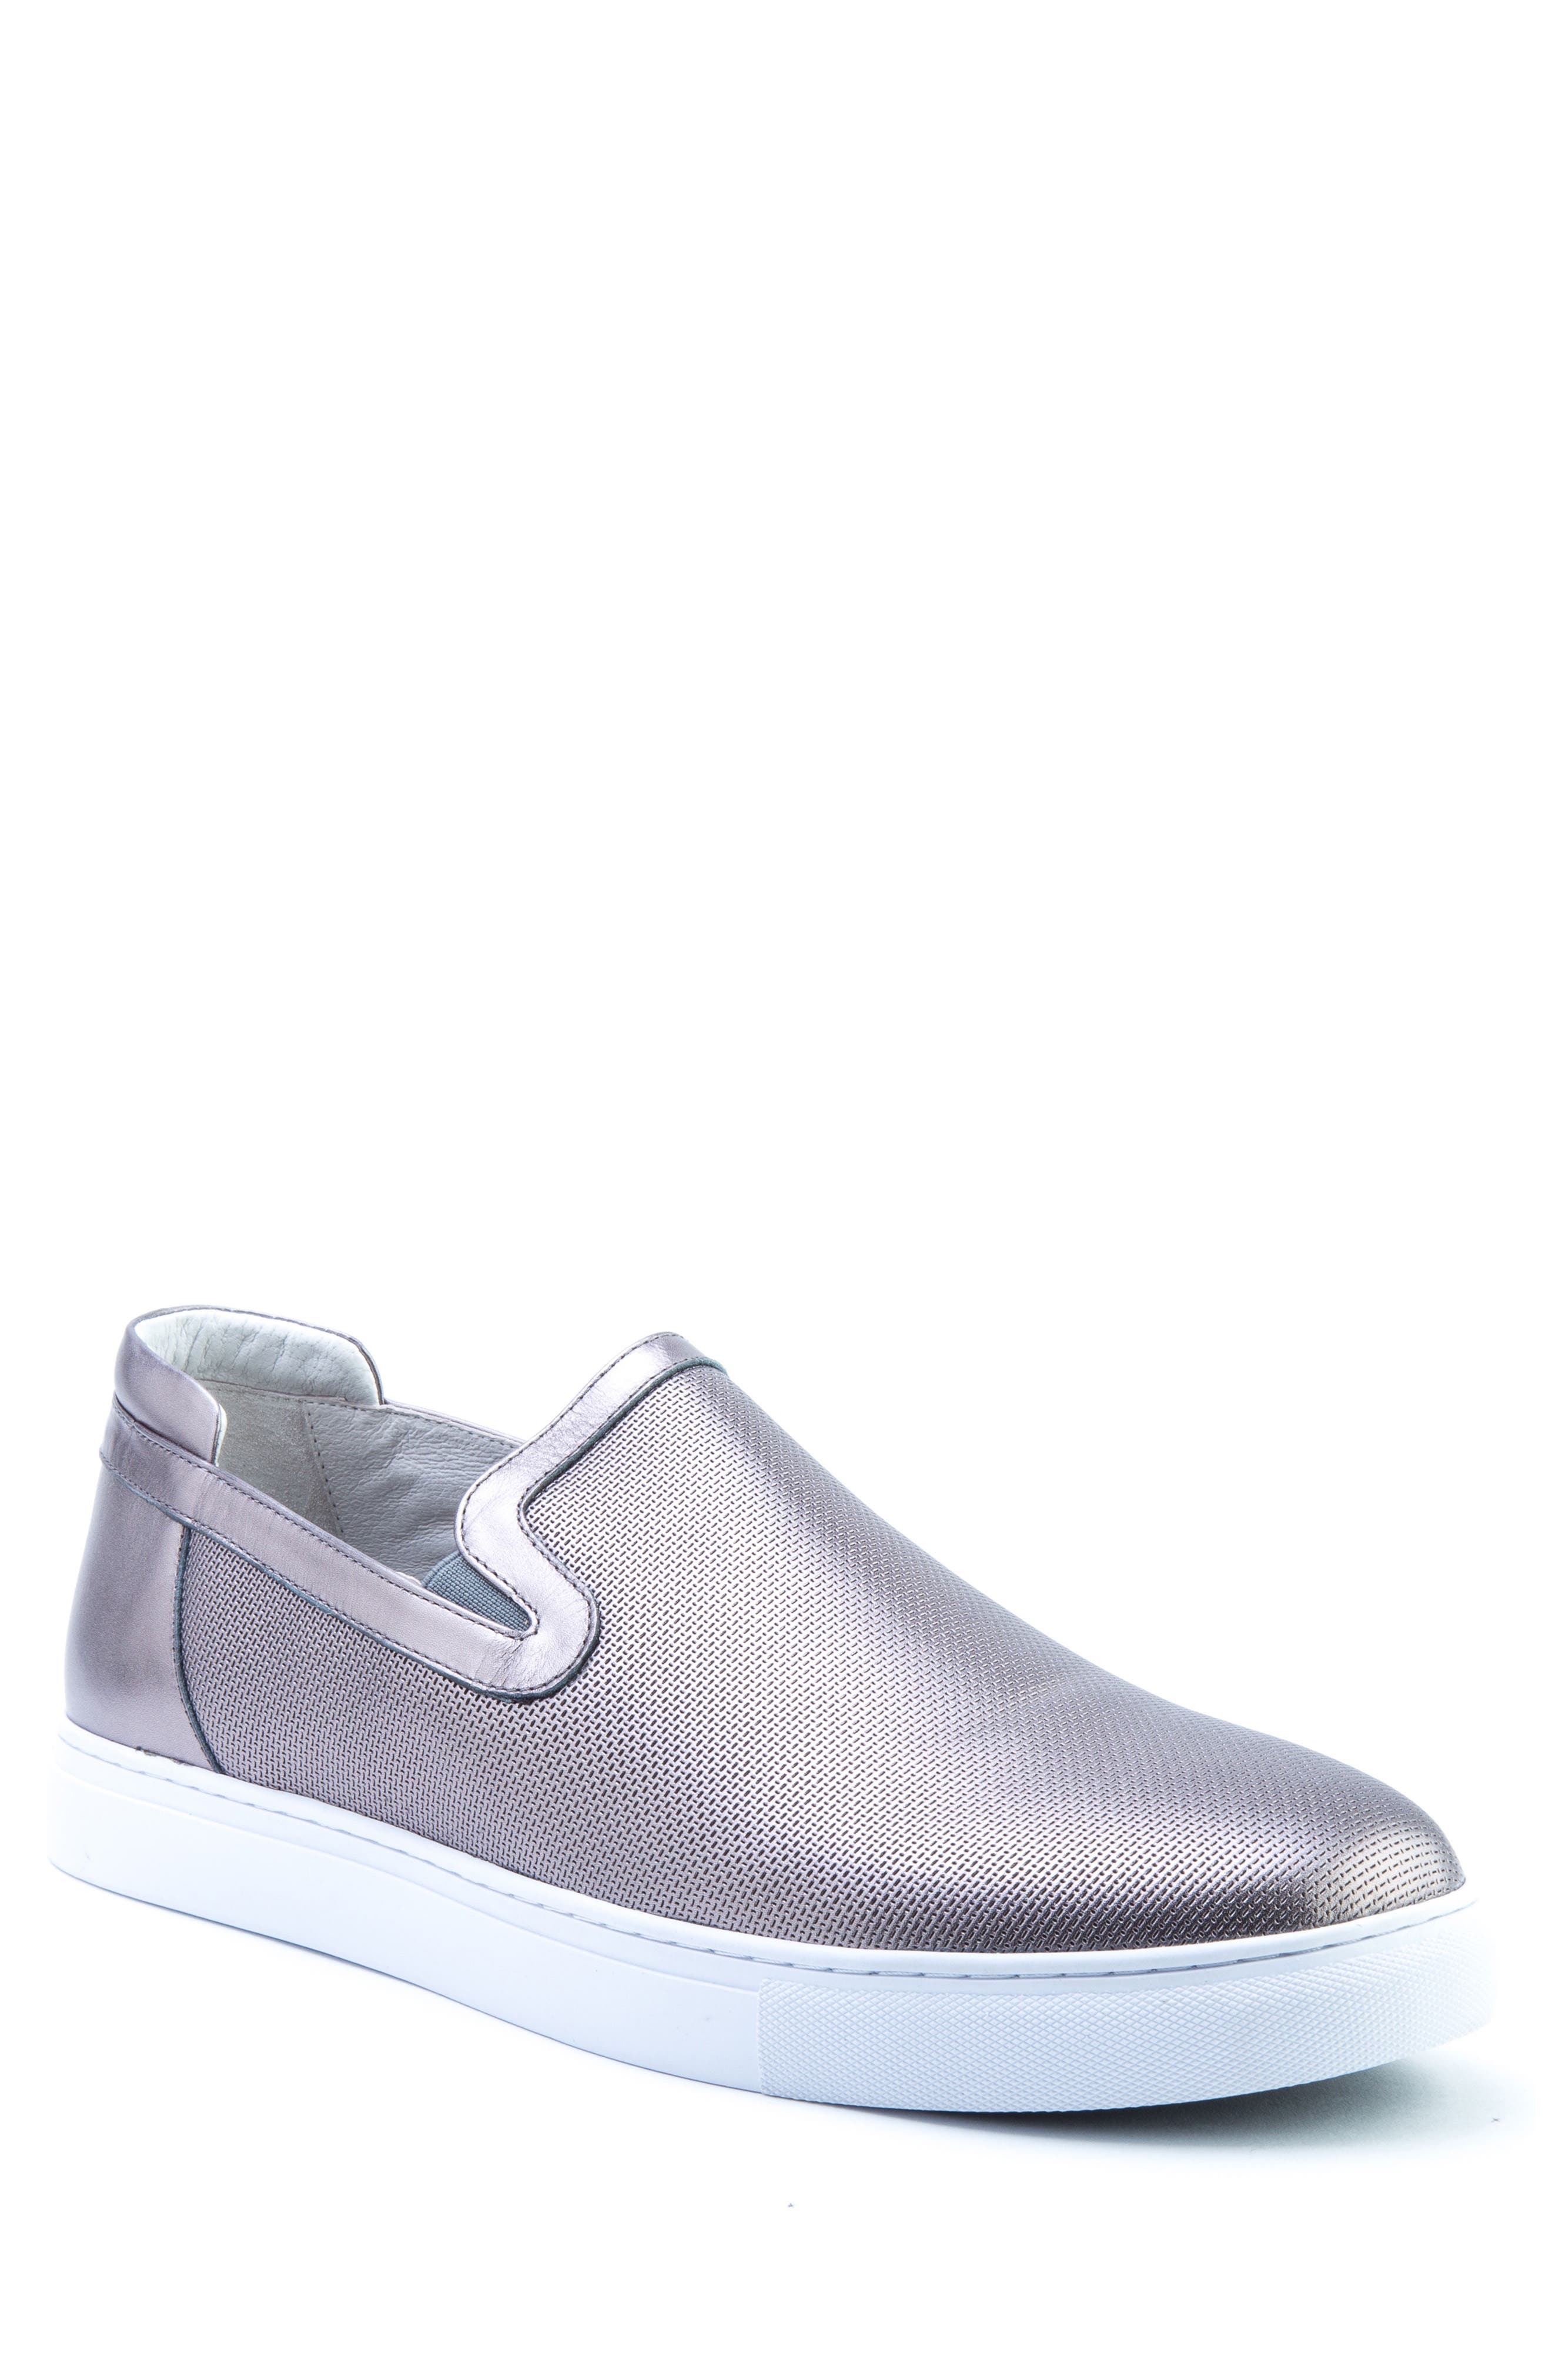 Alternate Image 1 Selected - Badgley Mischka Grant Sneaker (Men)